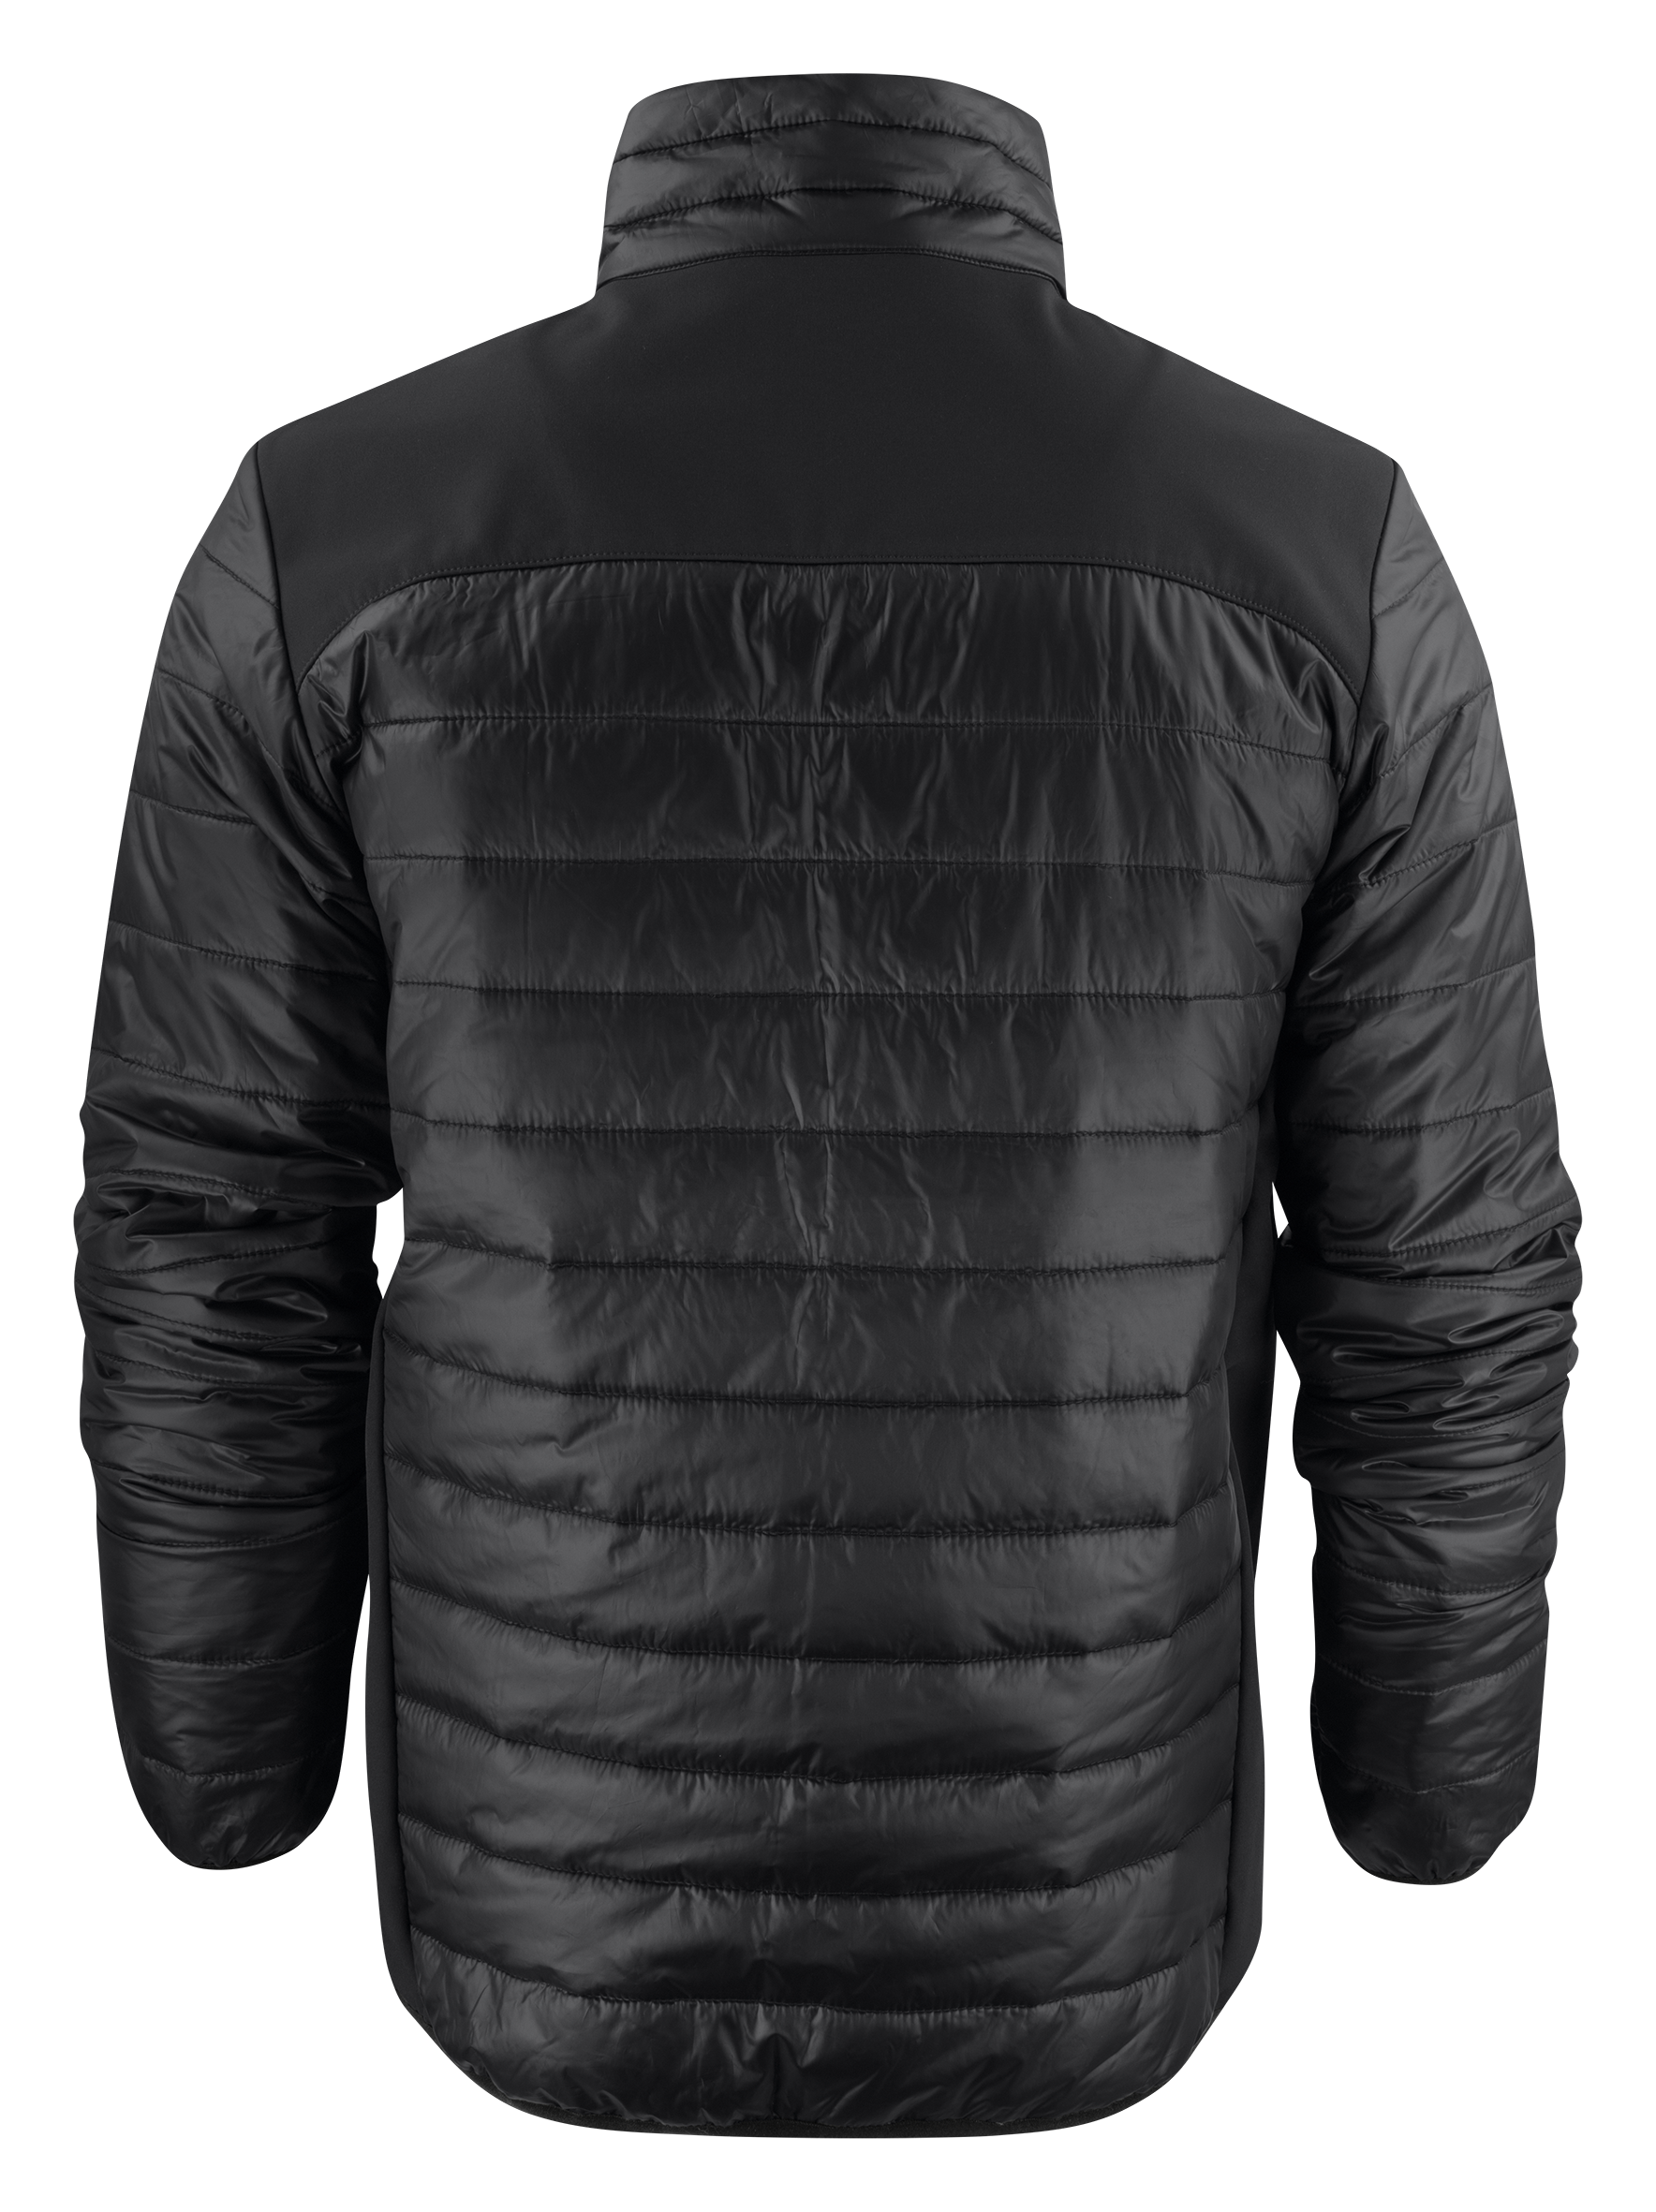 Back View: Unisex Expedition Jacket in Black